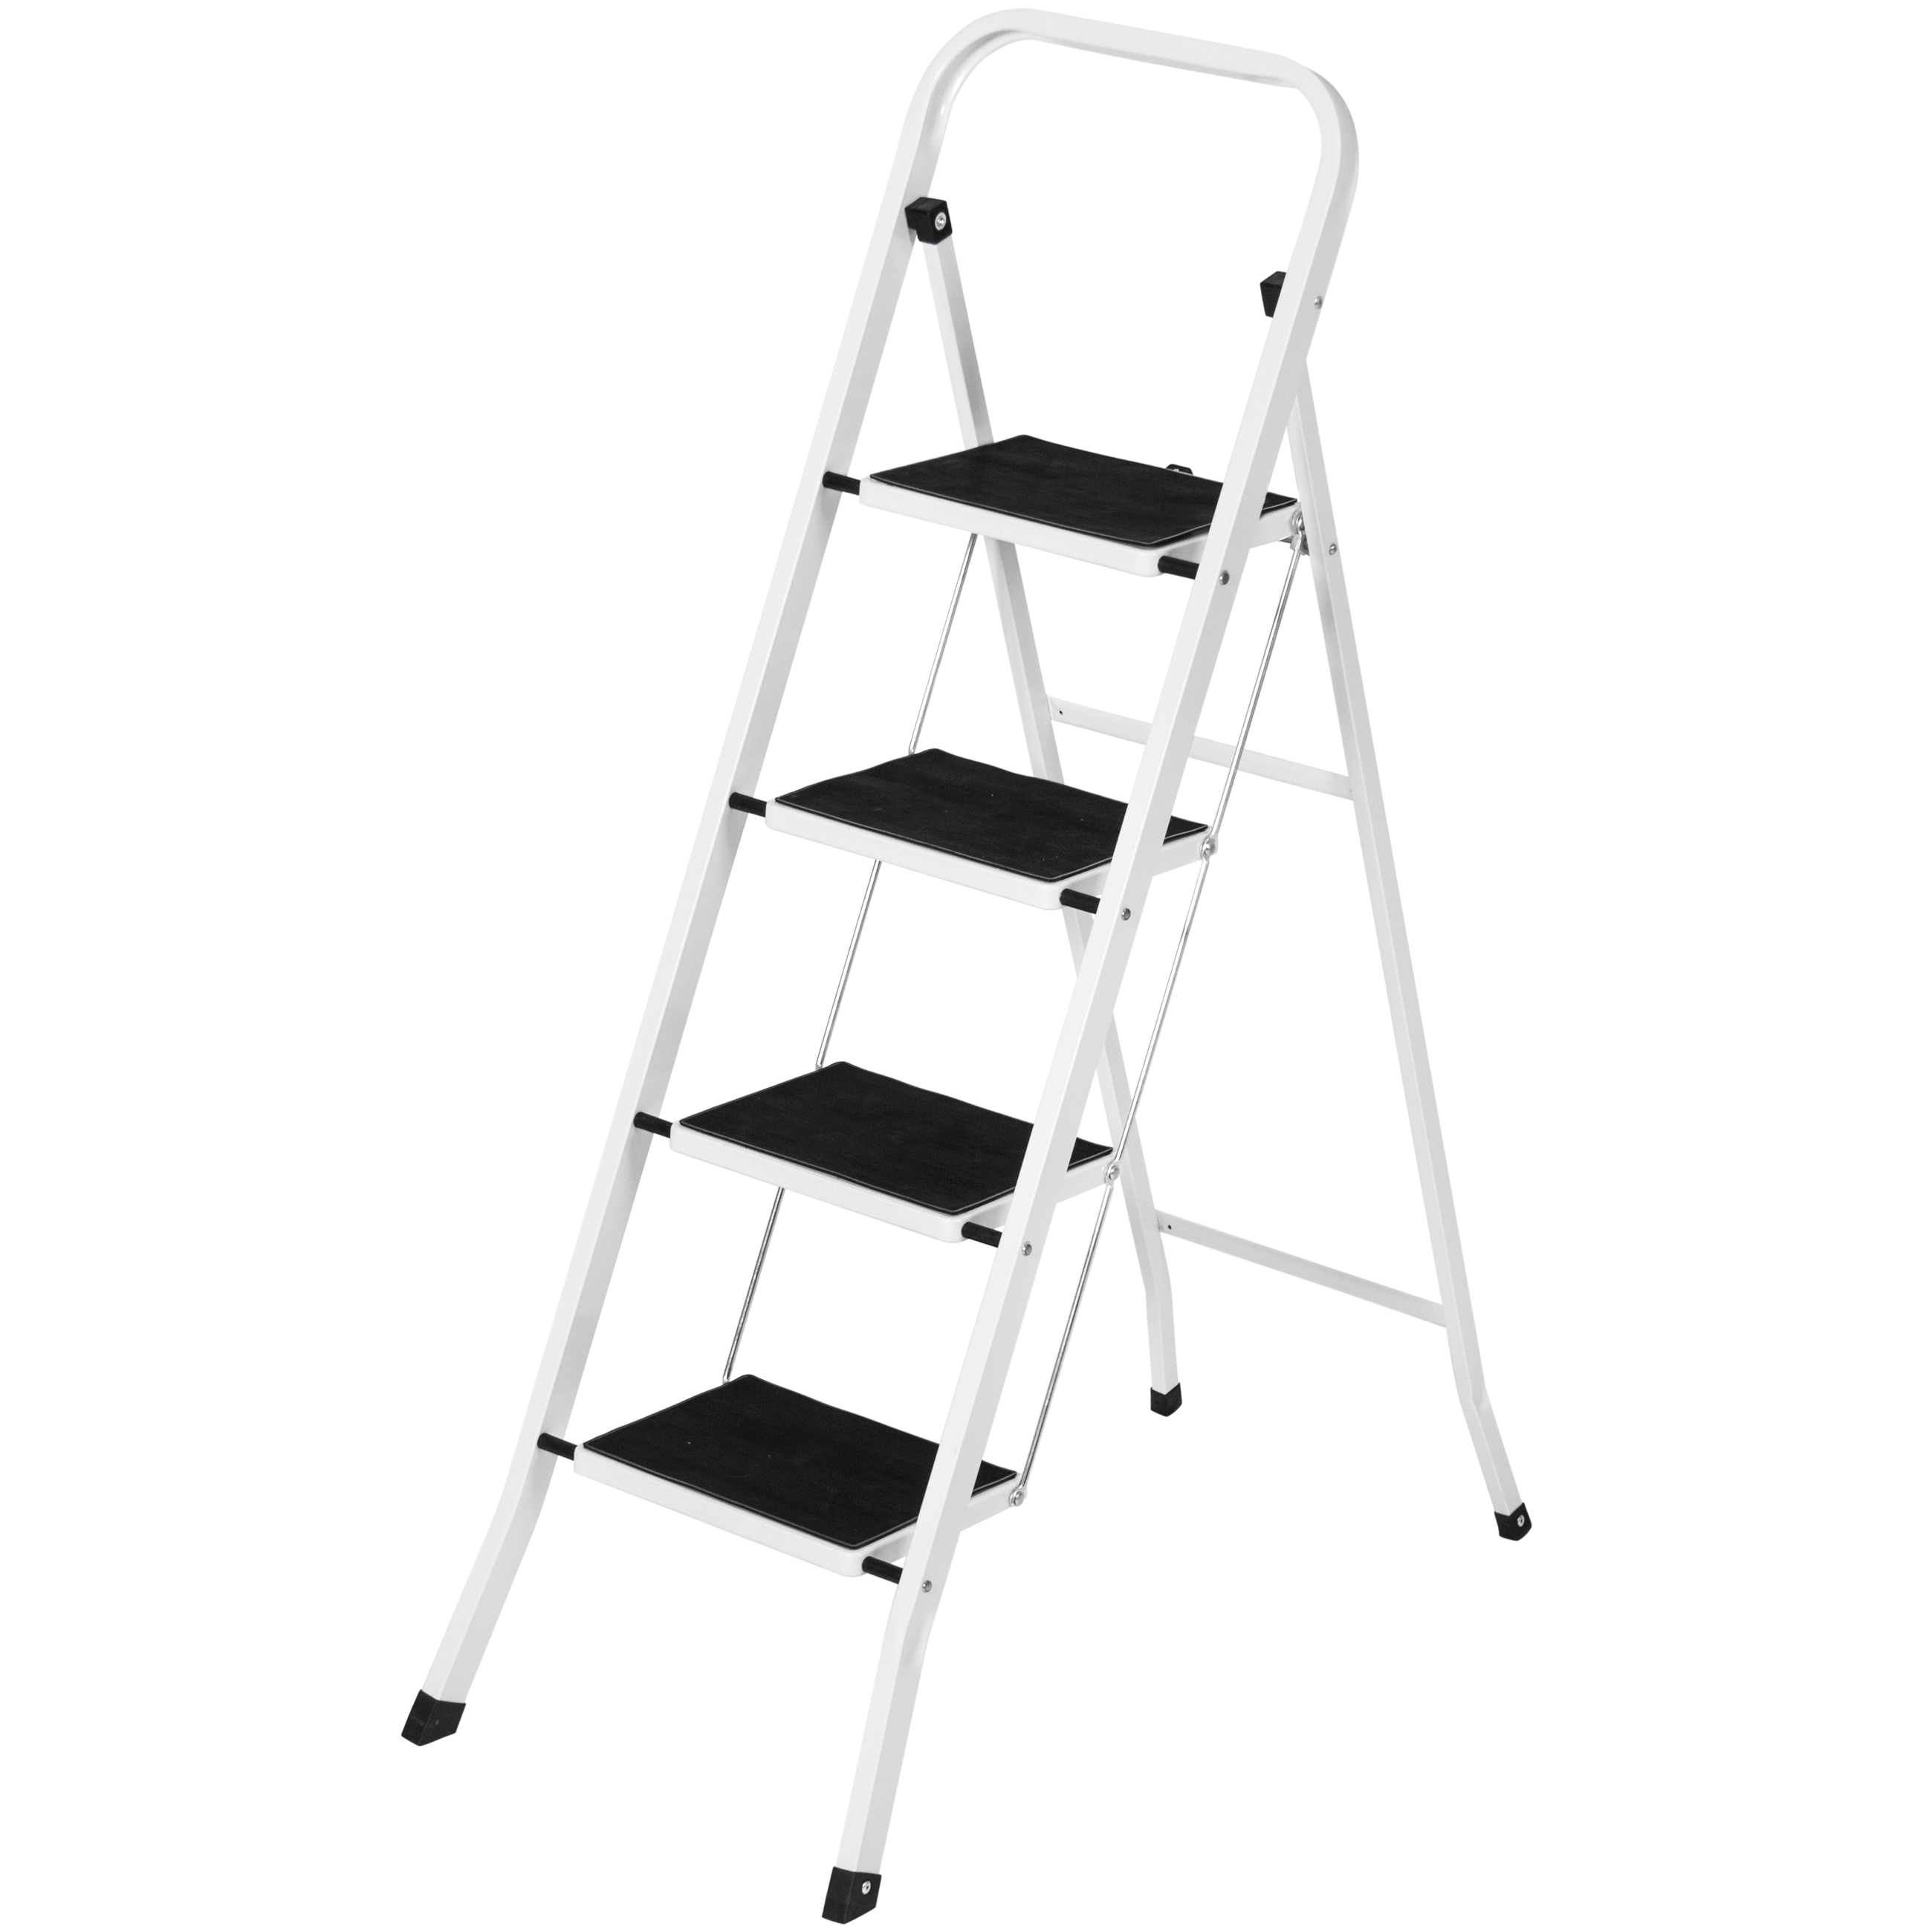 Best Choice Products Portable Folding 4 Step Ladder Steel Stool 300lb Heavy Duty Lightweight  sc 1 st  Walmart & Folding Step Stools islam-shia.org